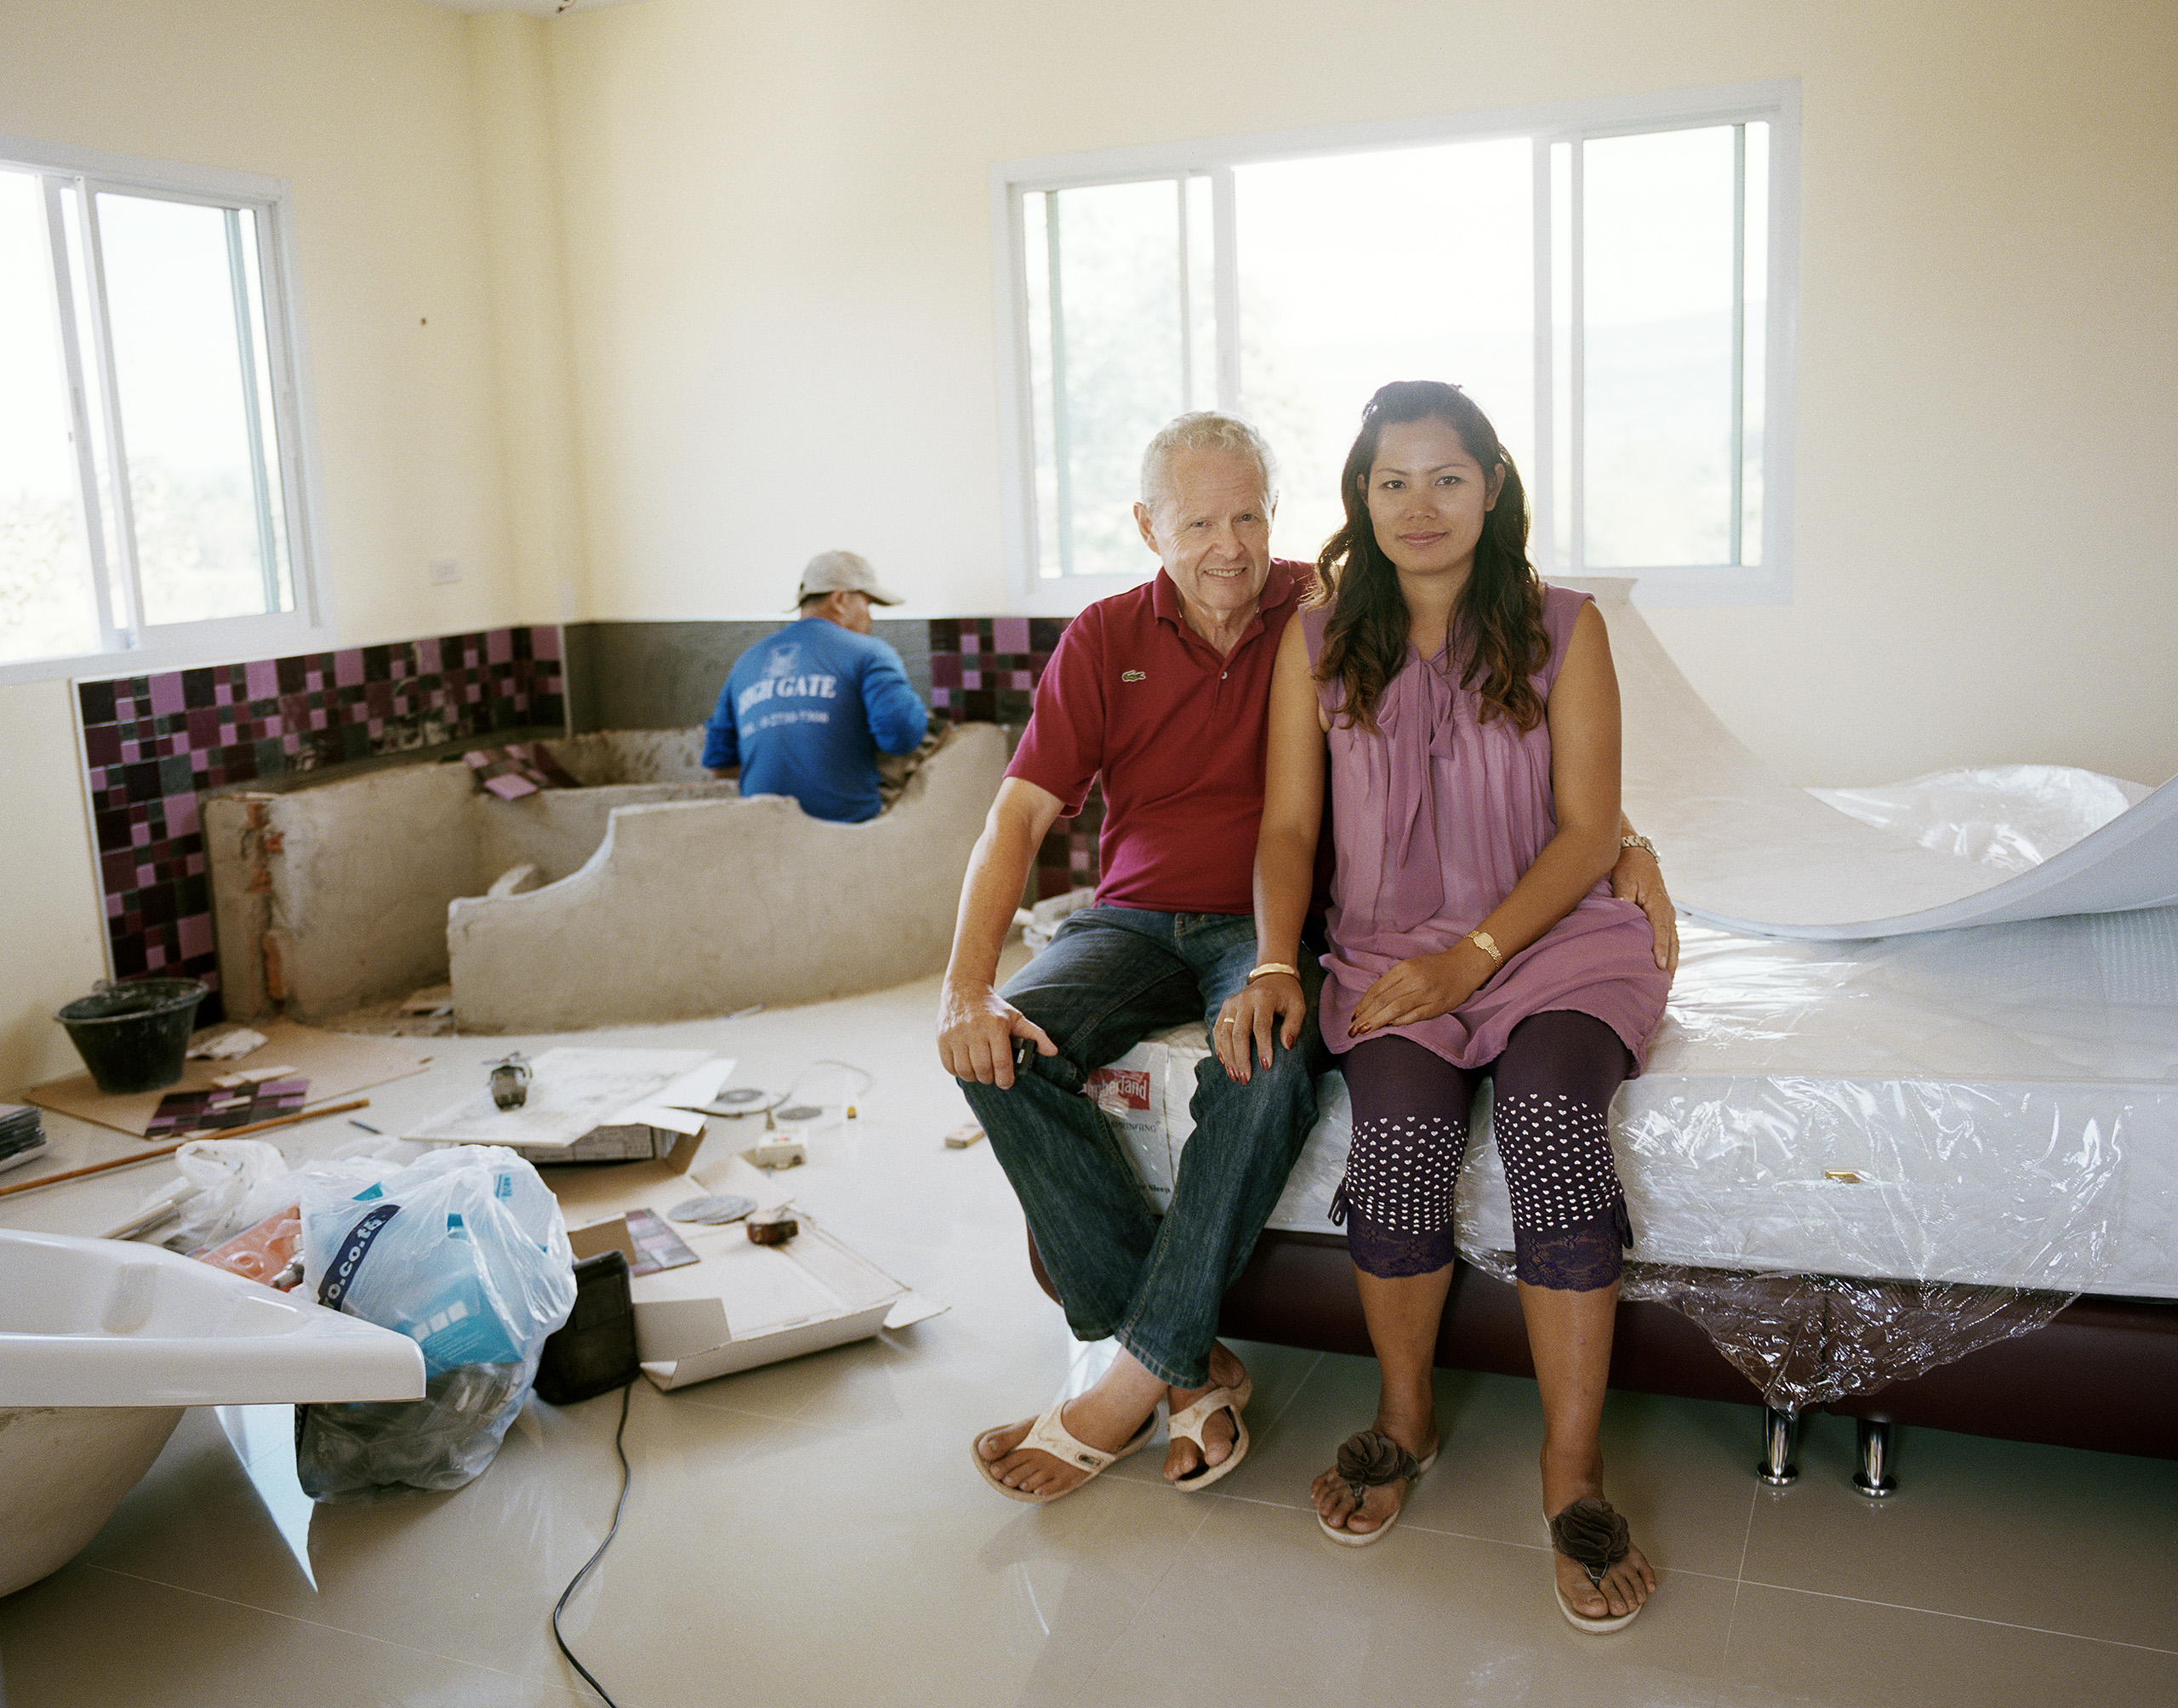 Erling and Aorratai, who are expecting a child, are installing a hot tub in the bedroom of the big European-style house they are building in Kaeng Khro, 2012.